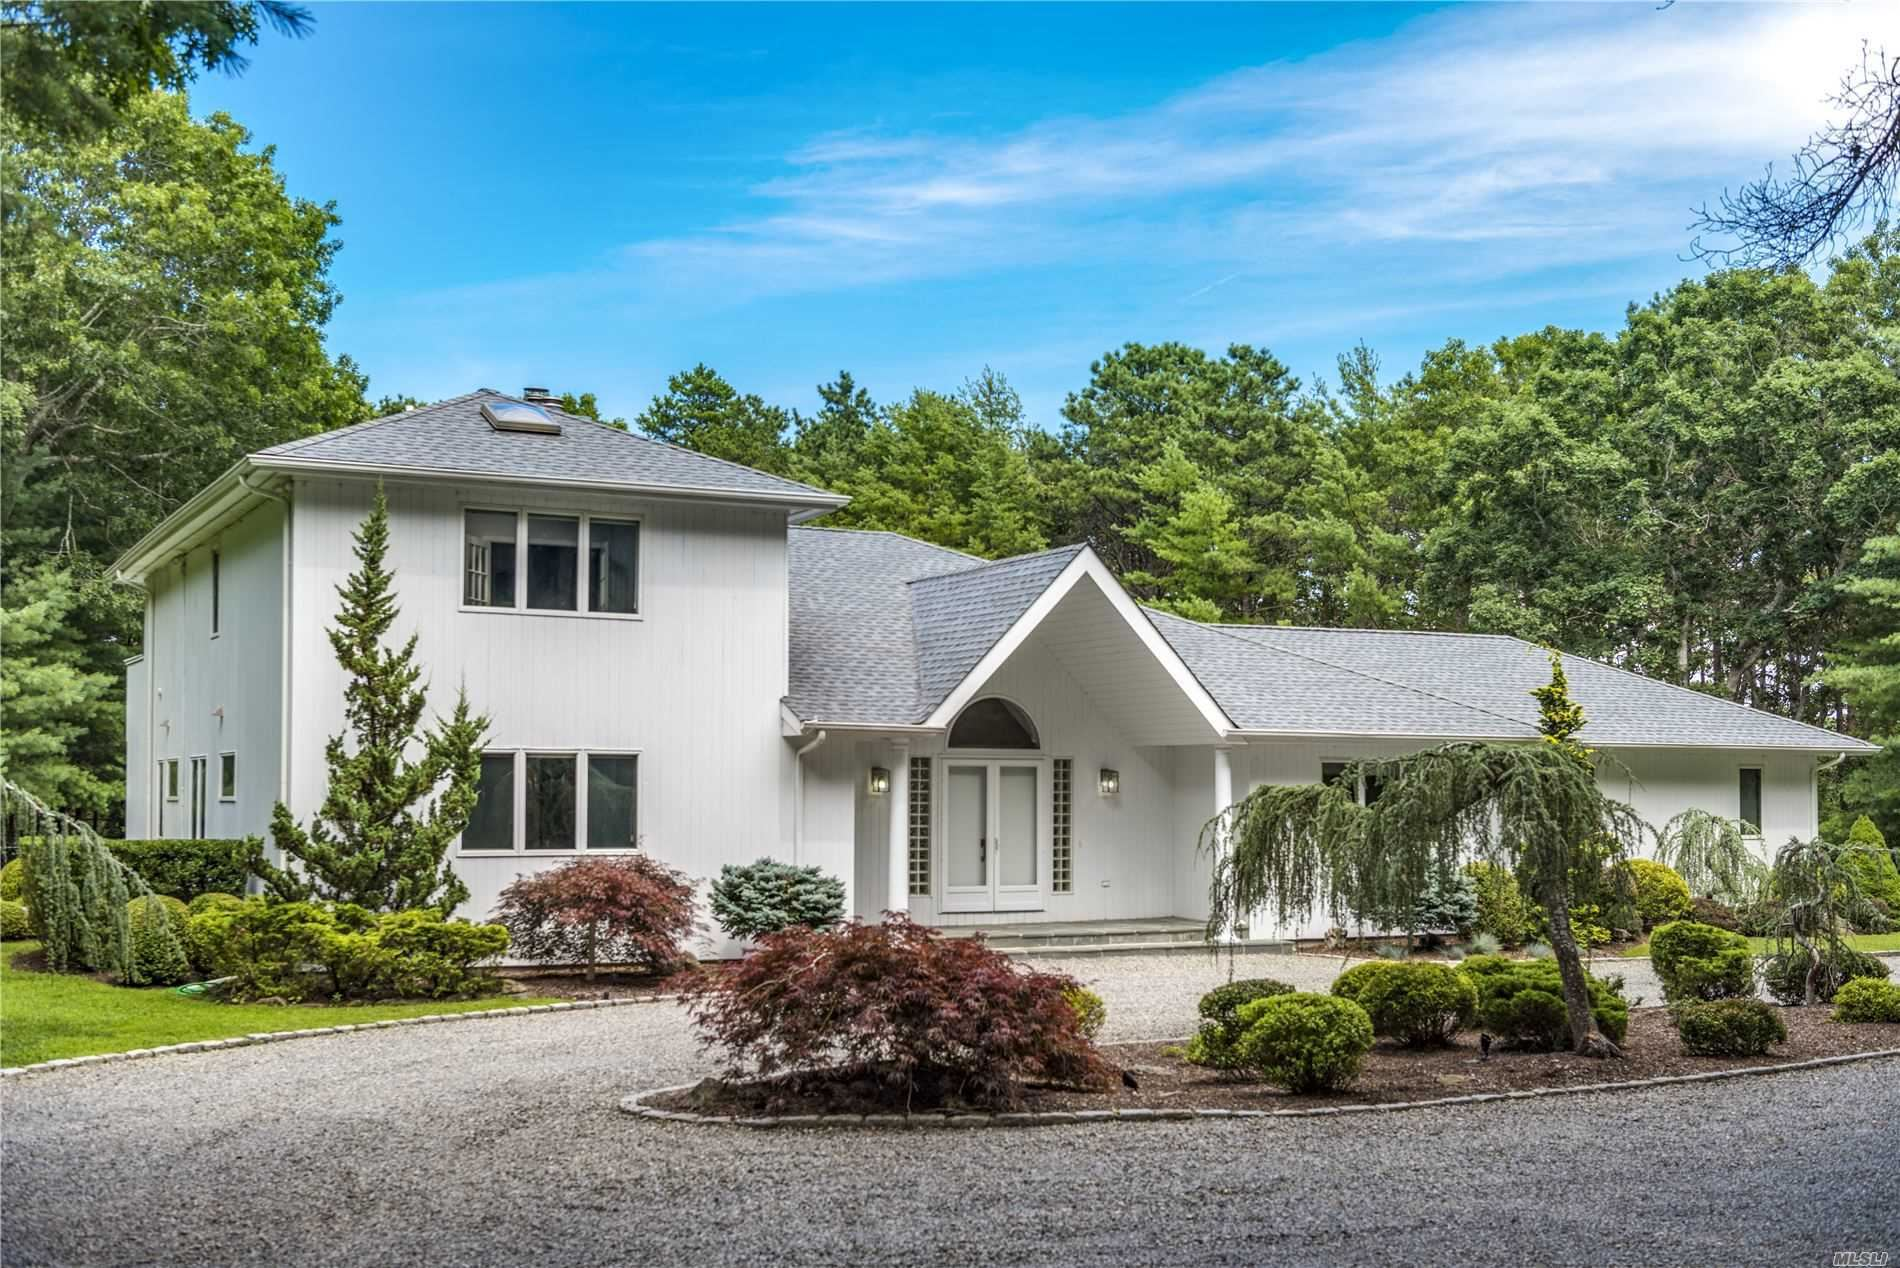 12 & 10 Blueberry Court, Quogue, NY 11959 - MLS#: 3249790